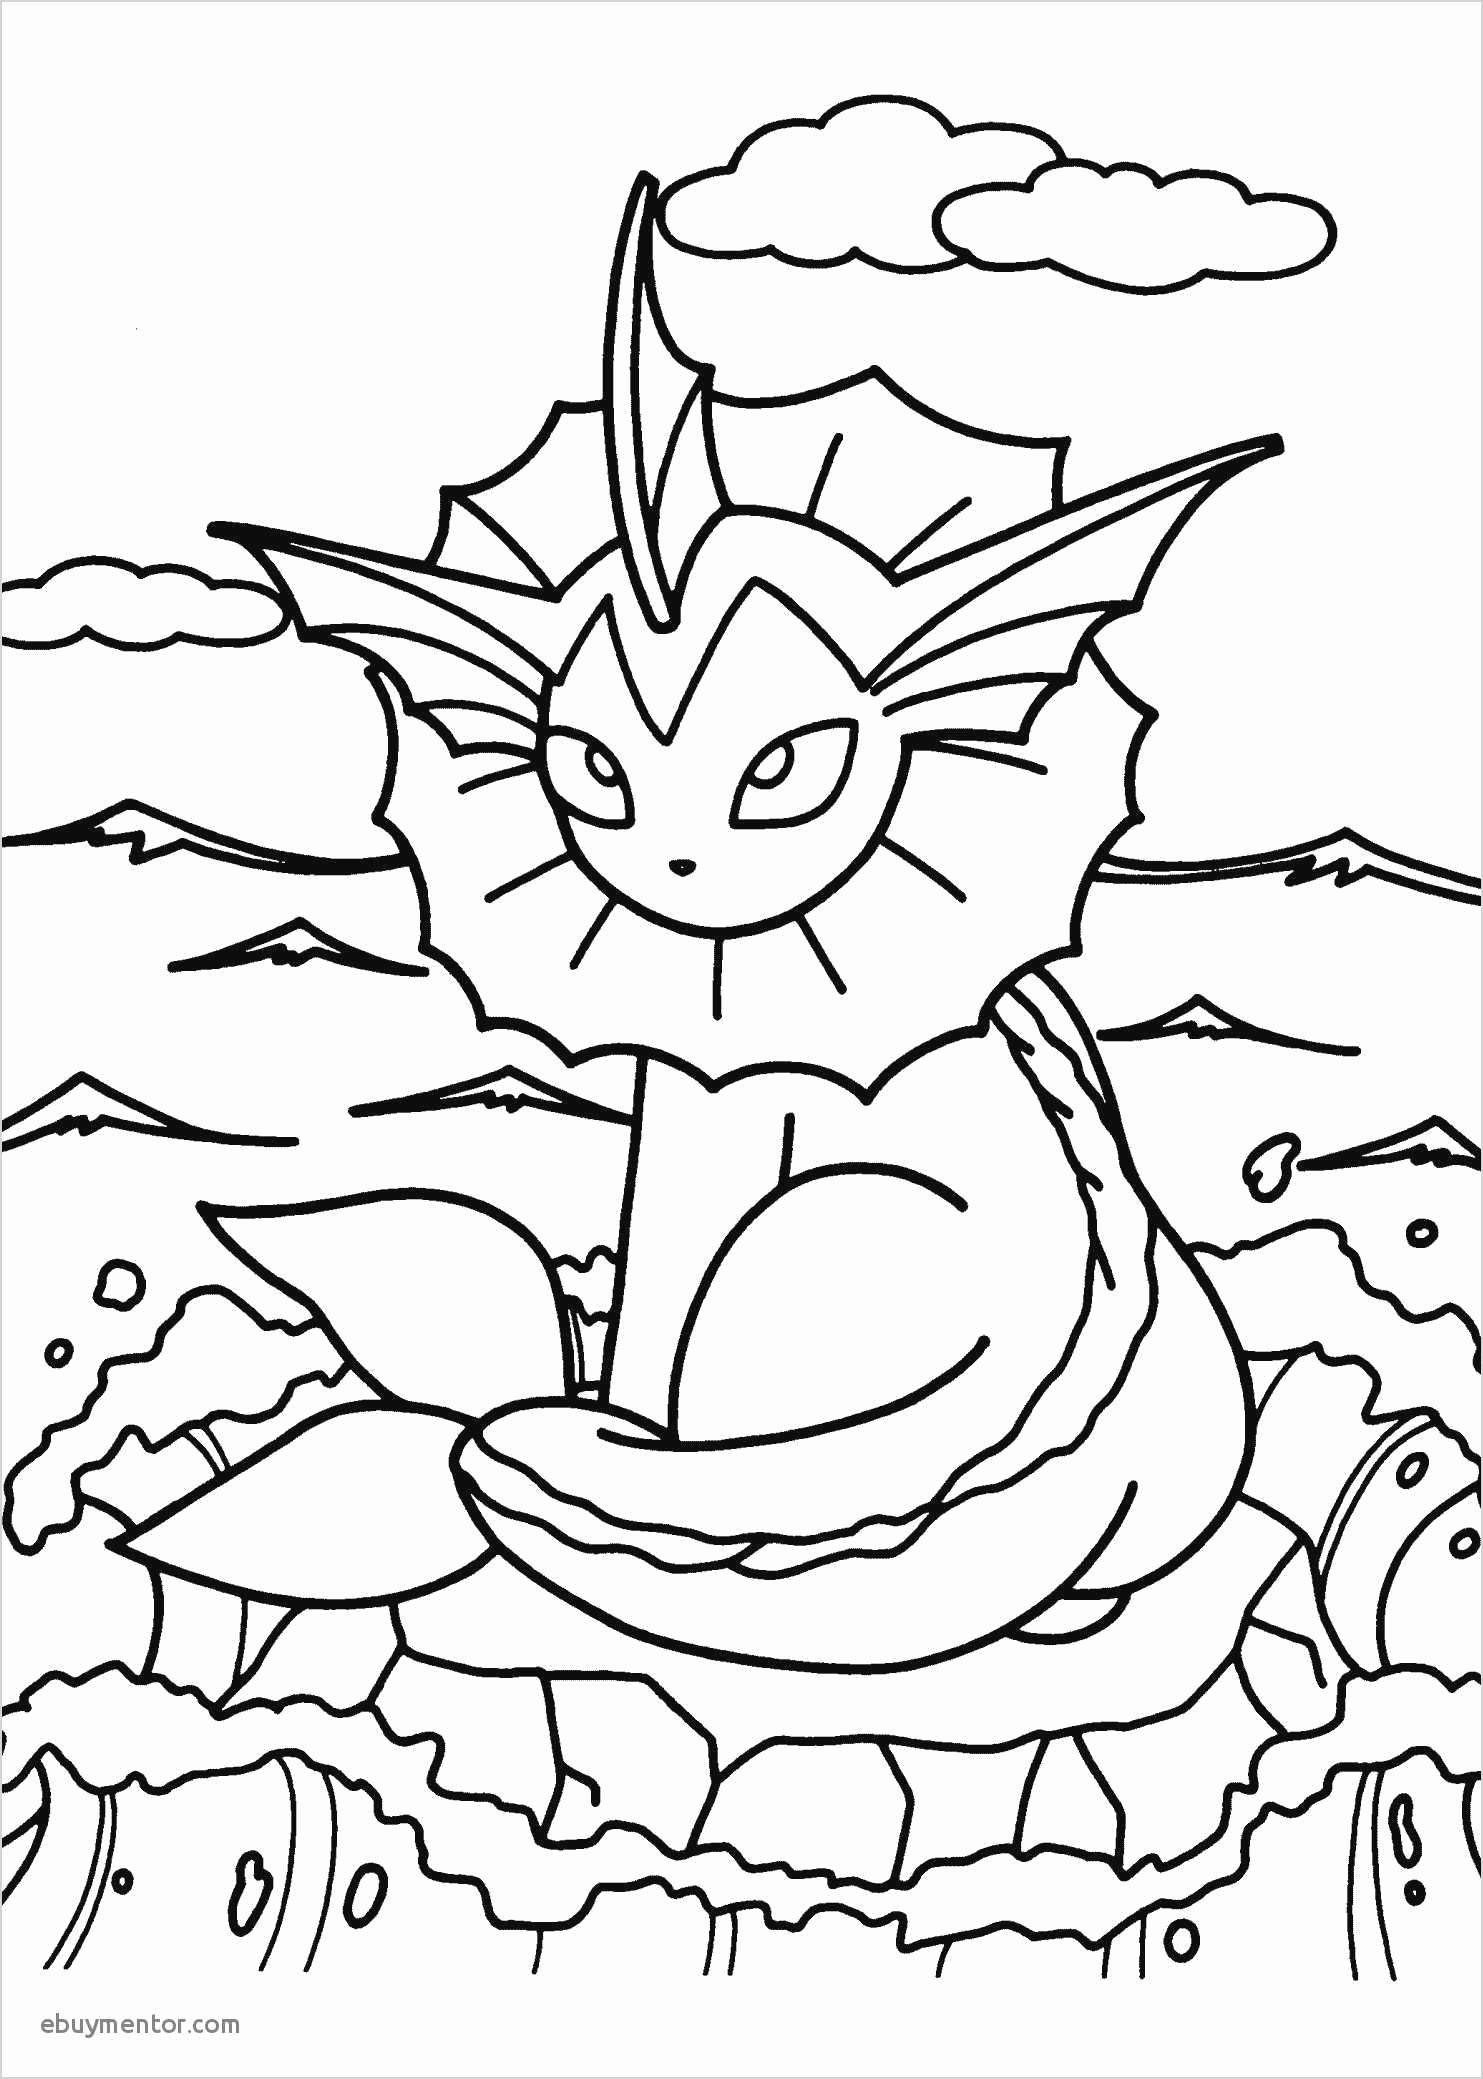 Coloring Papers To Print Best Of 25 Coloring Pages To Print Collection Coloring Sheets Pokemon Coloring Pages Pokemon Coloring Princess Coloring Pages